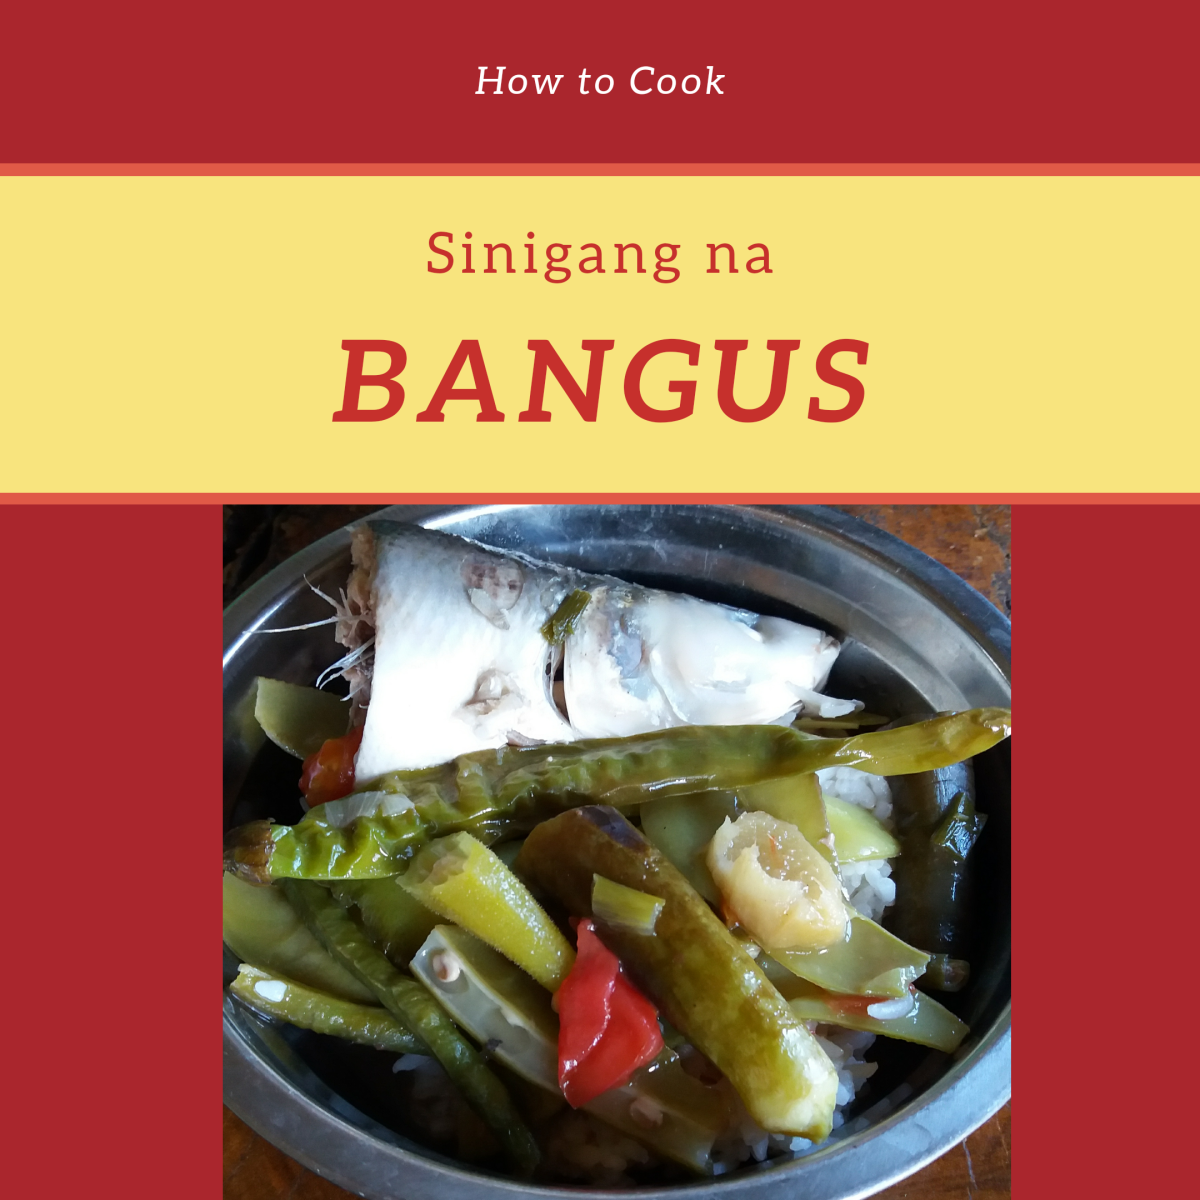 How to Cook Sinigang na Bangus: A Filipino-Inspired Dish